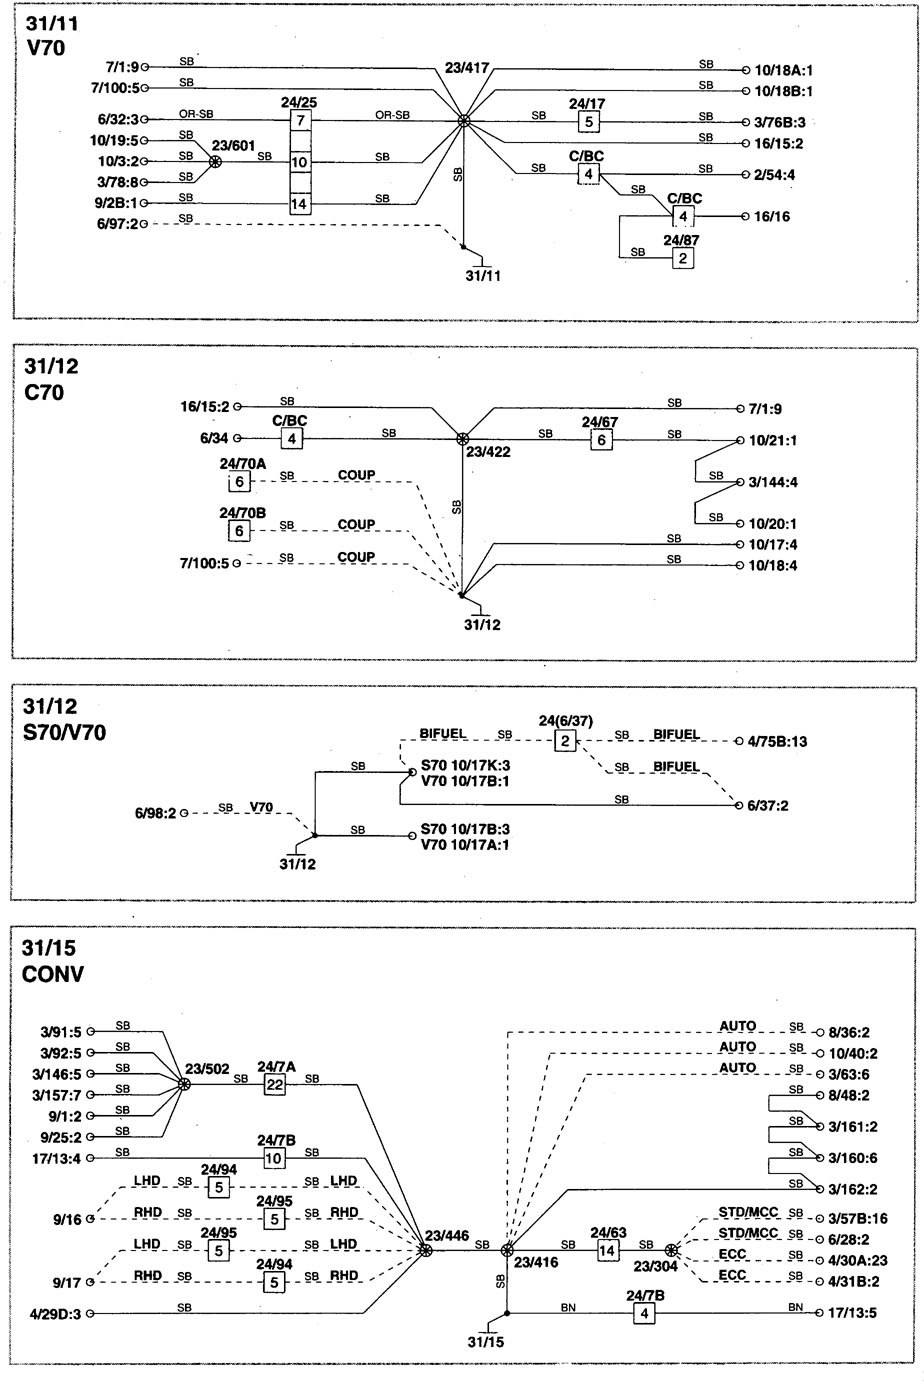 volvo c70 wiring diagram ground distribution 3 1999 volvo c70 (1999 2004) wiring diagrams ground distribution c70 wiring diagram at soozxer.org